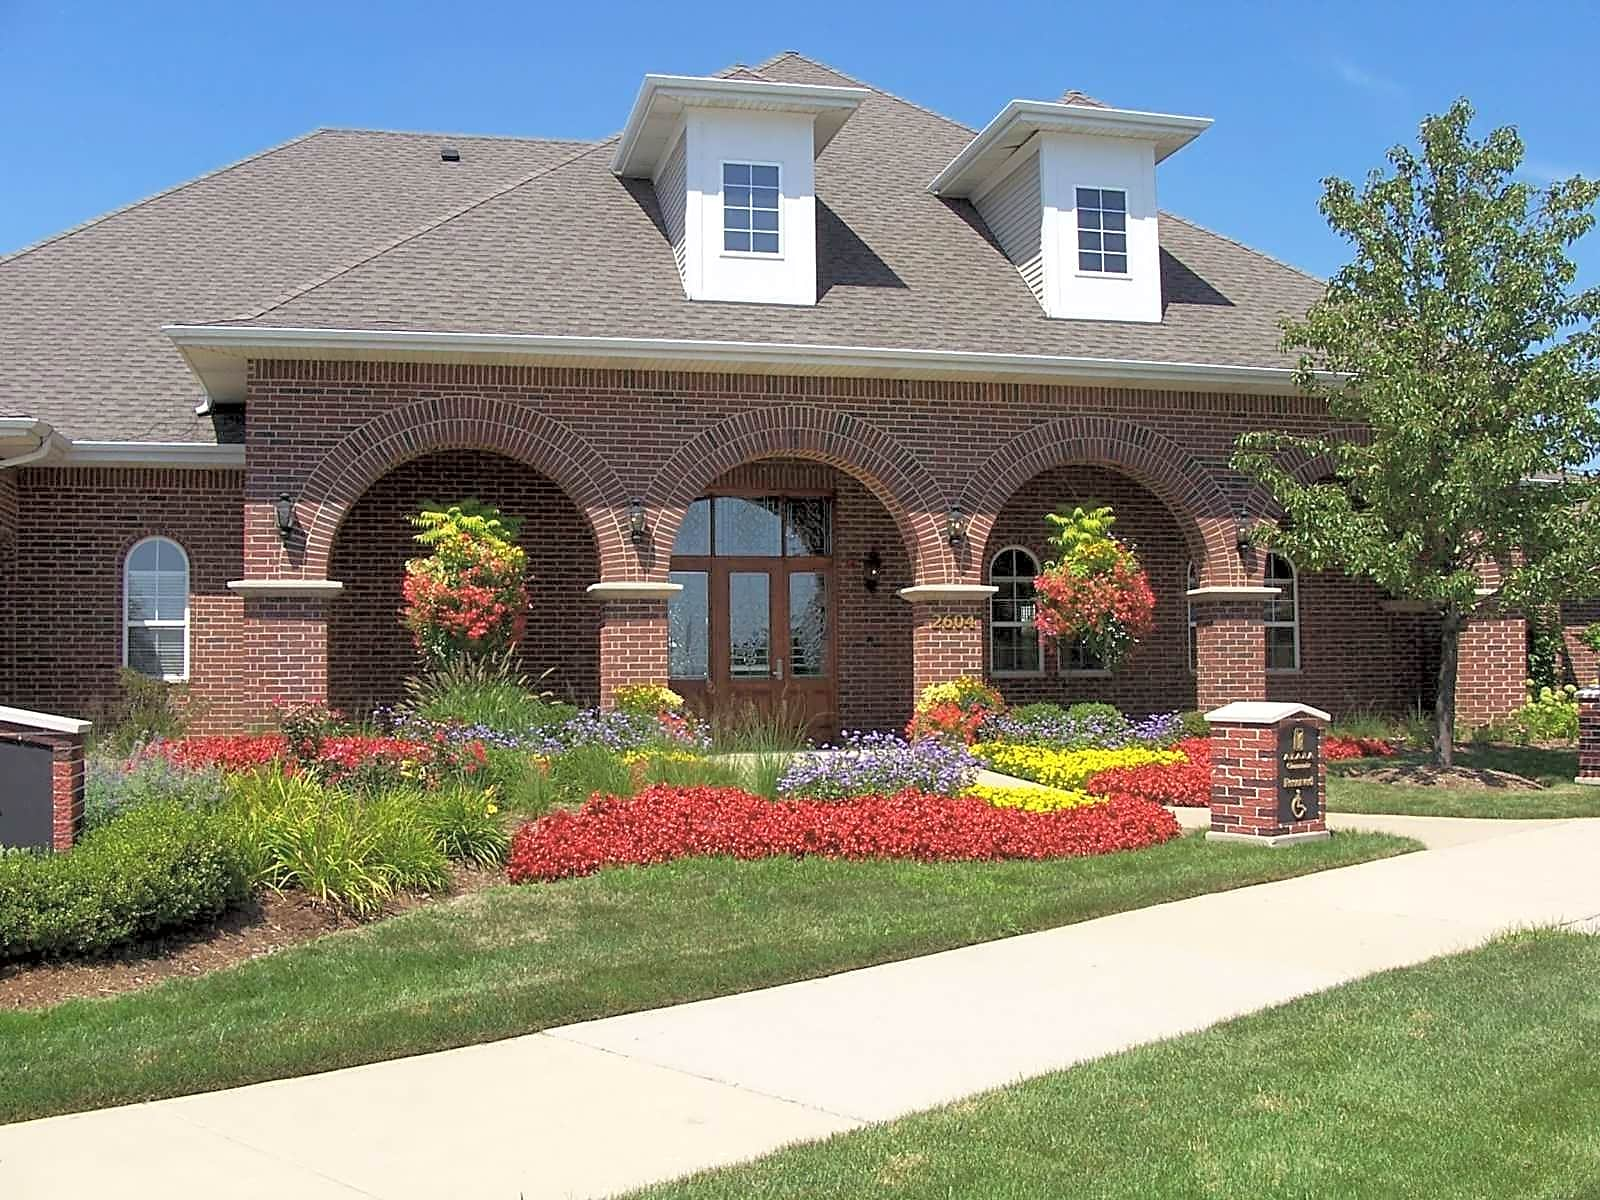 Glenmuir Luxury Rental Homes for rent in Naperville